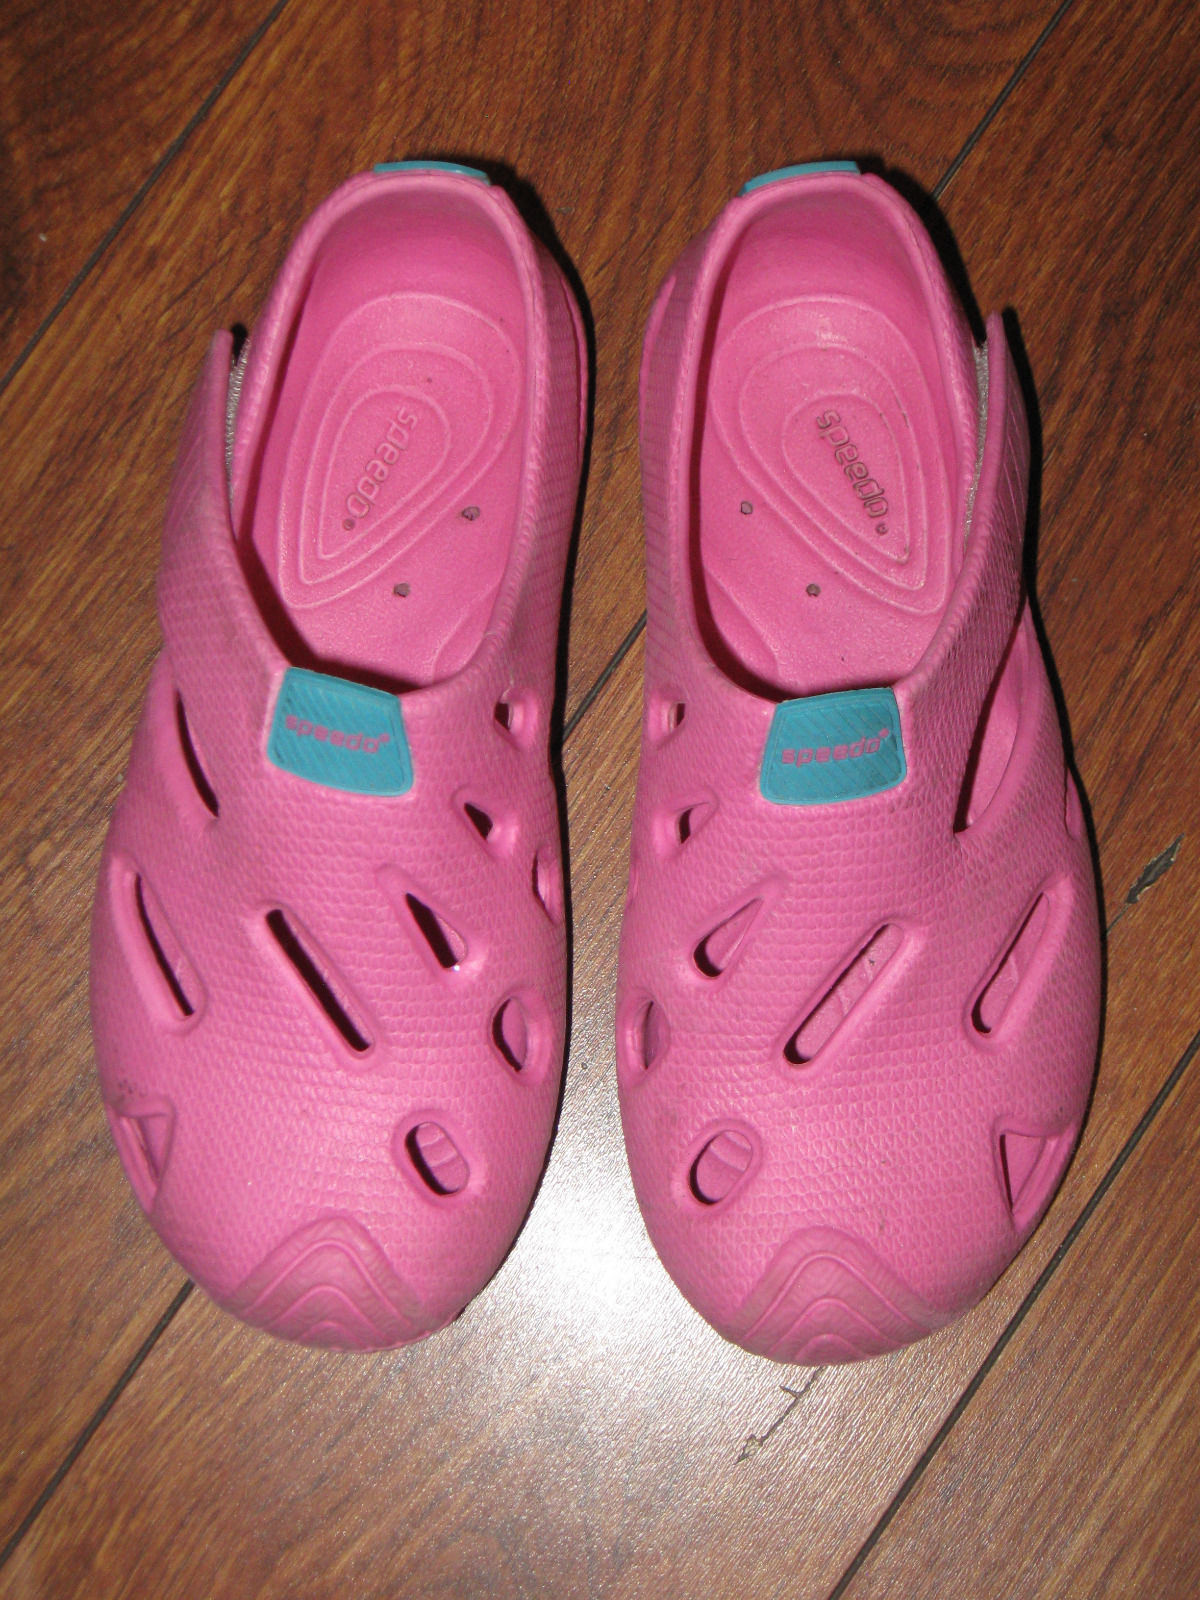 Primary image for SPEEDO SHOES PINK RUBBER CLASSIC CLOGS UNISEX TODDLER GIRLS SZ 11-11.5